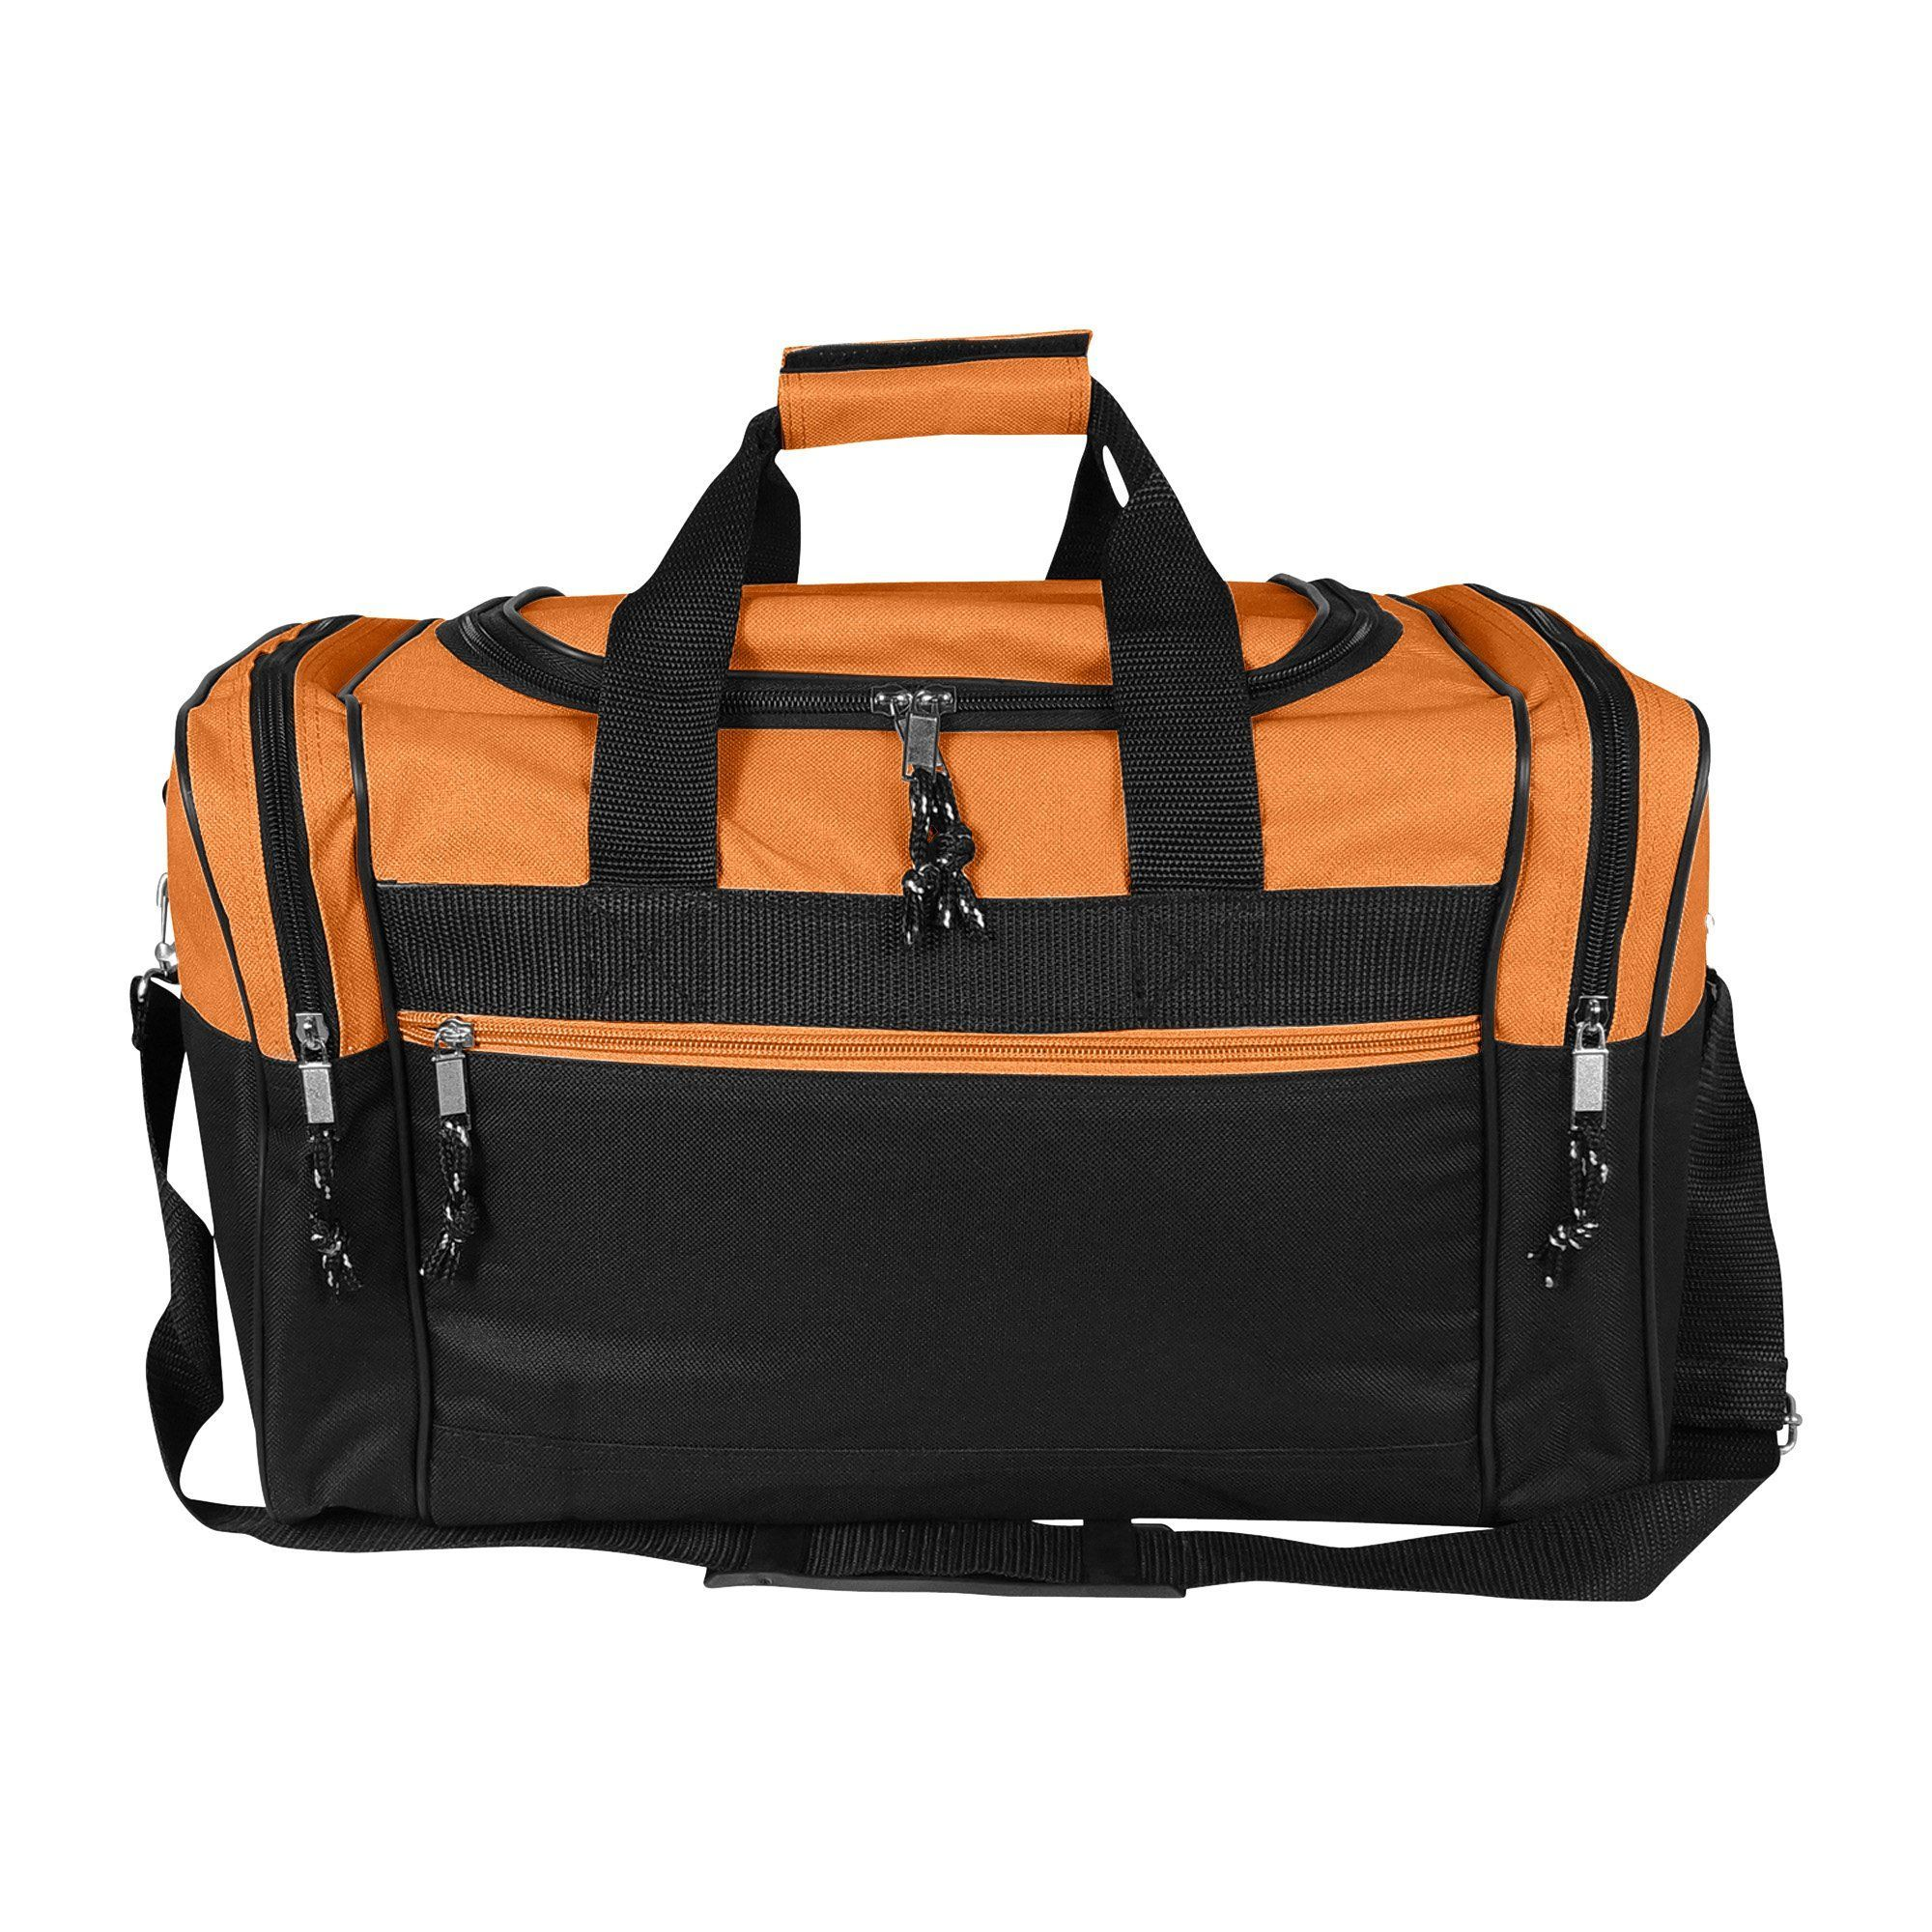 FEATURES  Original U-shape main zippered compartment, two end zippered  pockets, front zippered pocket, adjustable and removable shoulder strap. d7489427c2